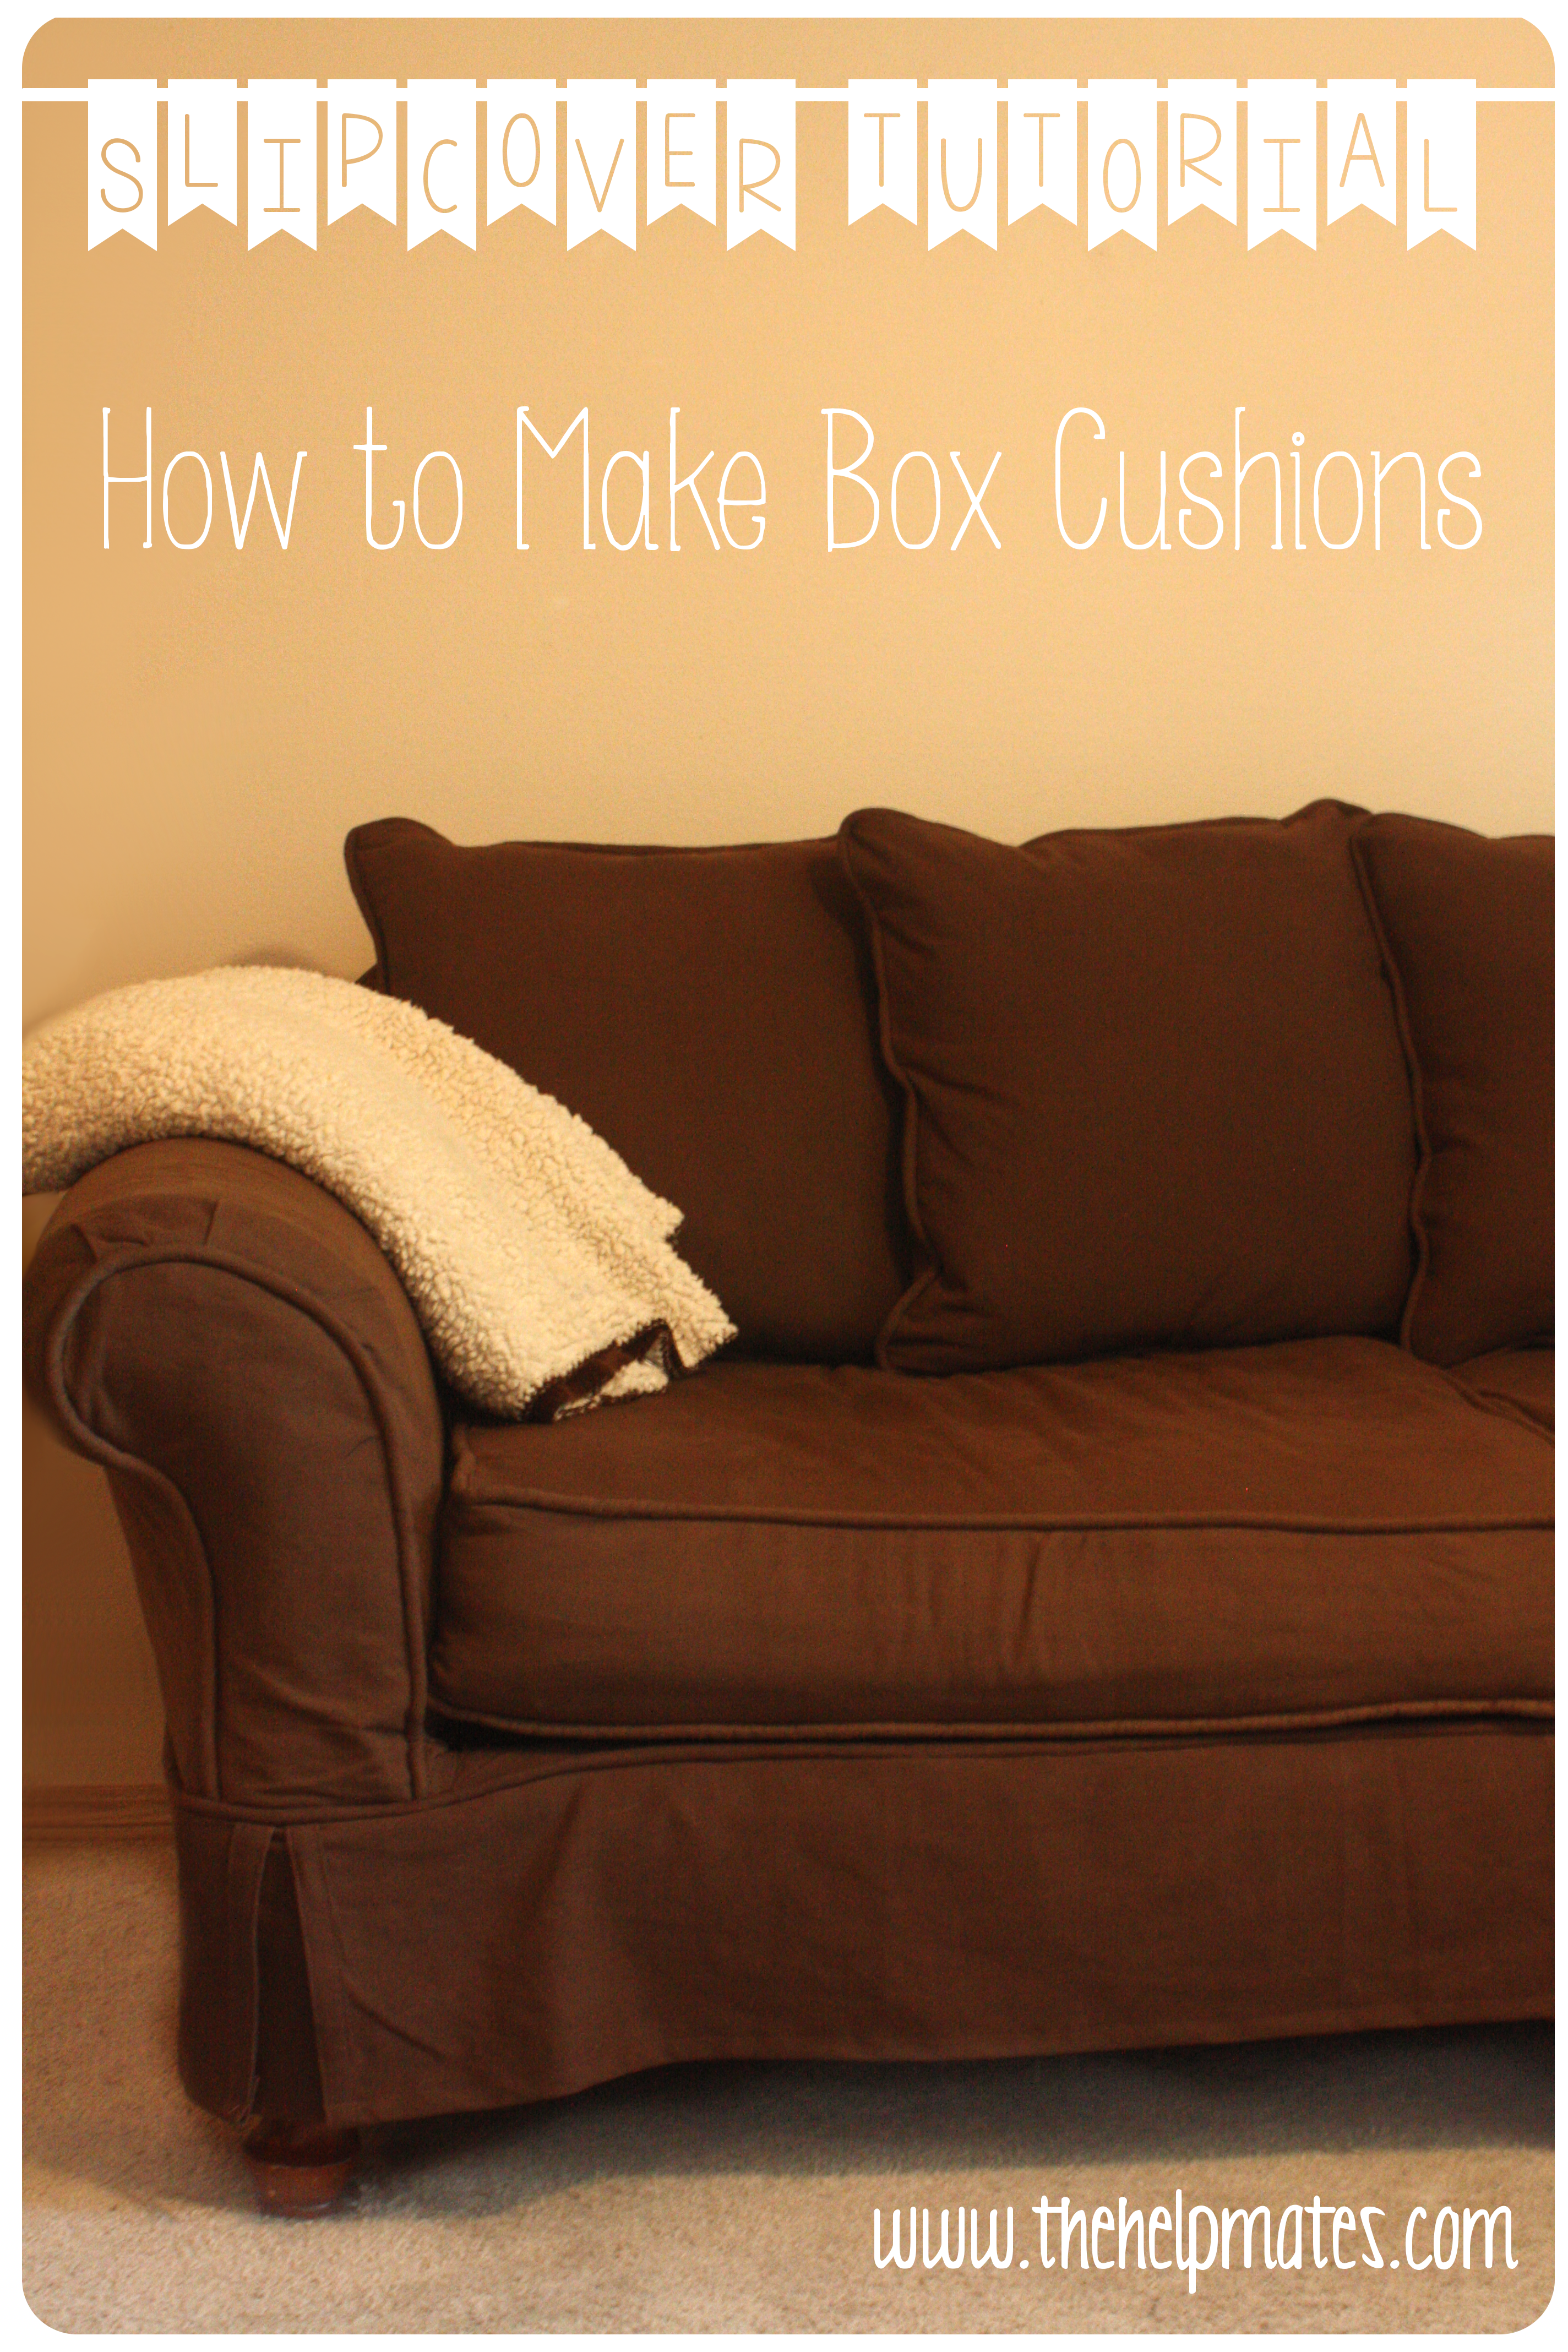 Slipcover Tutorial How To Make Box Cushions